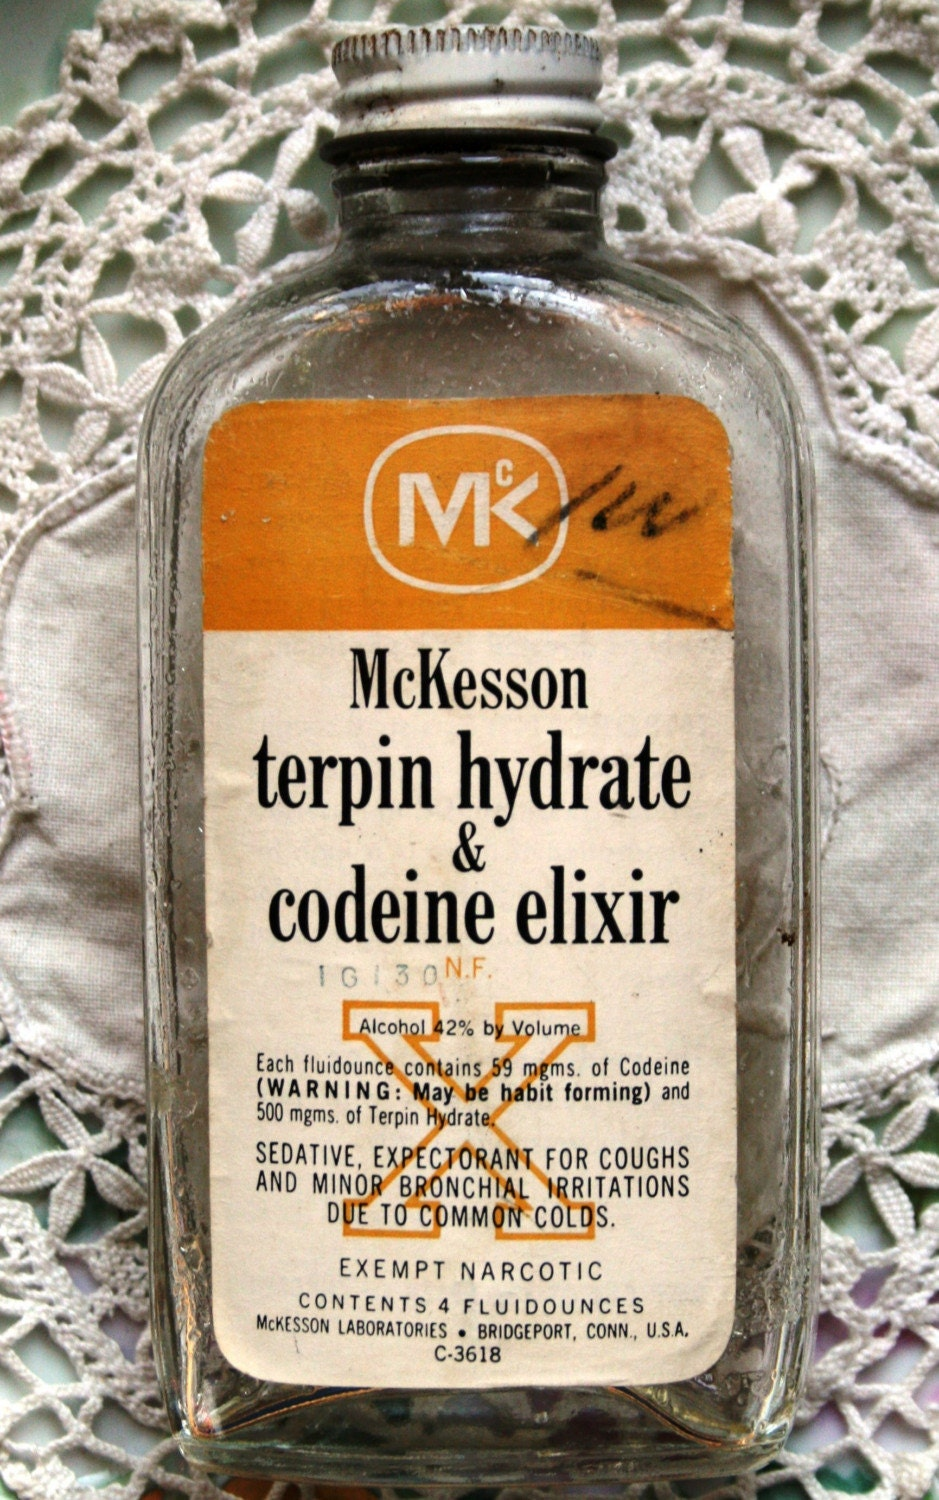 Vintage Mckesson Terpin Hydrate And Codeine Elixir Bottle